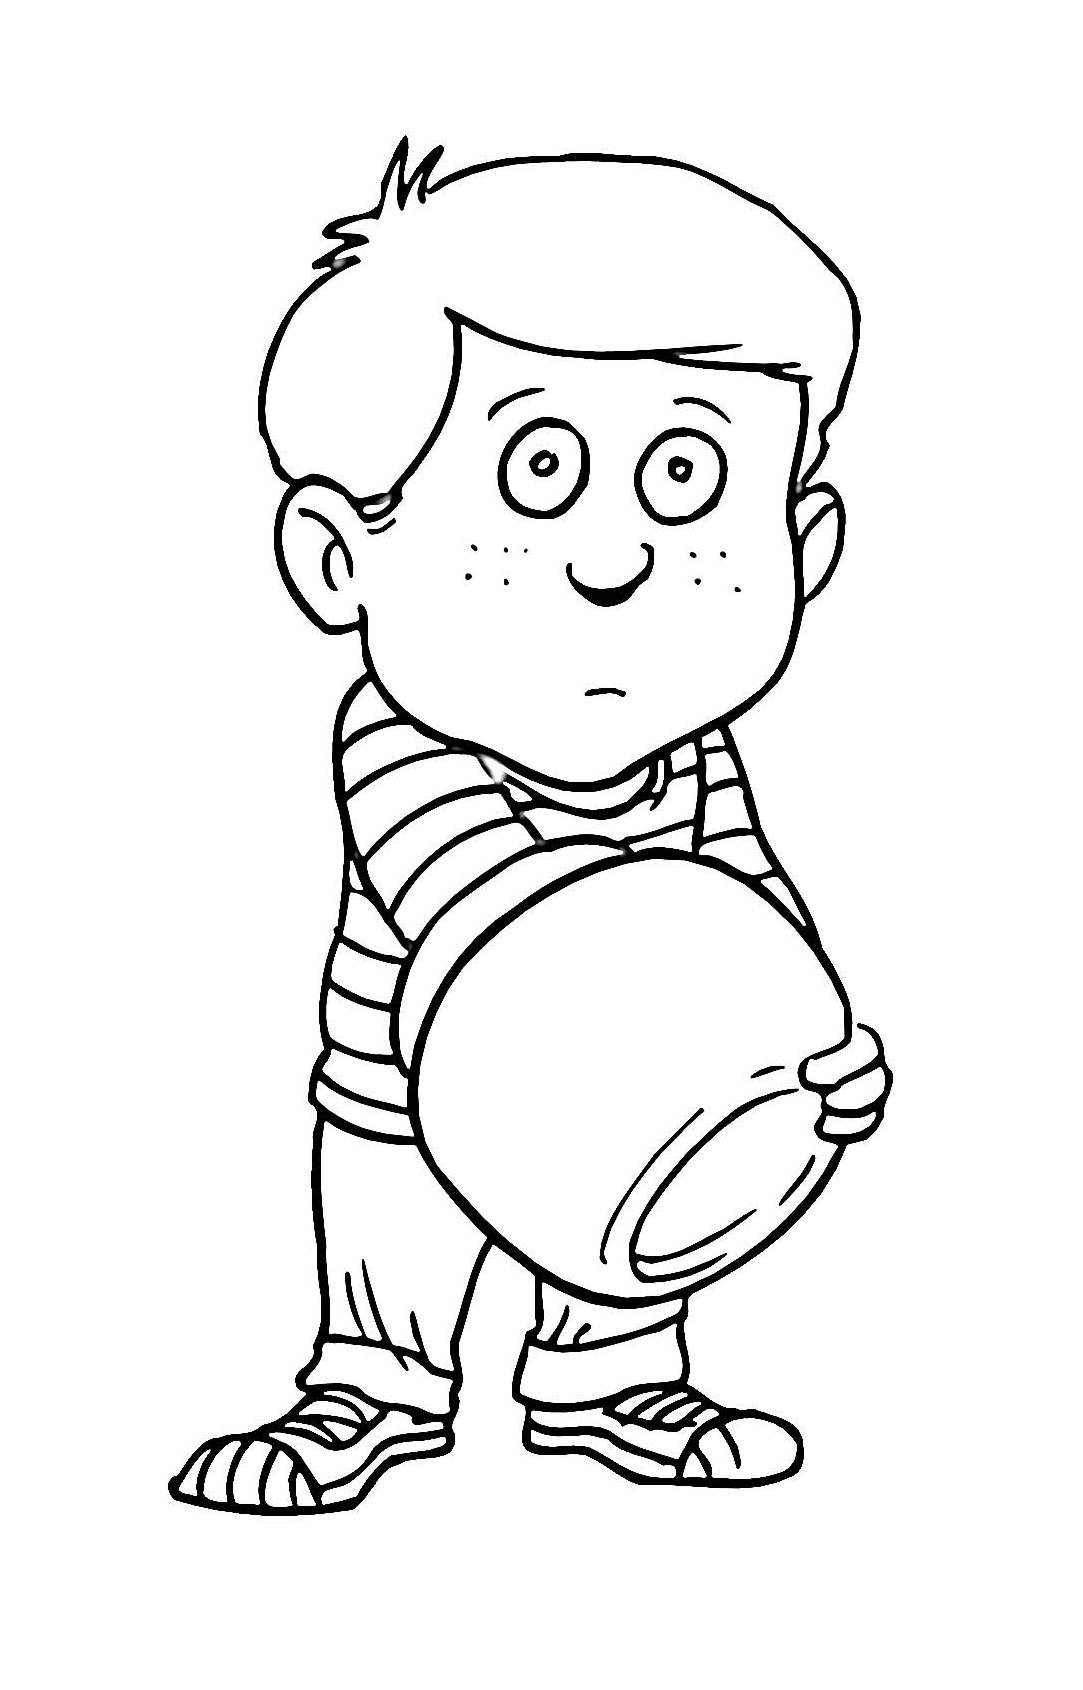 boy coloring games free printable boy coloring pages for kids coloring games boy